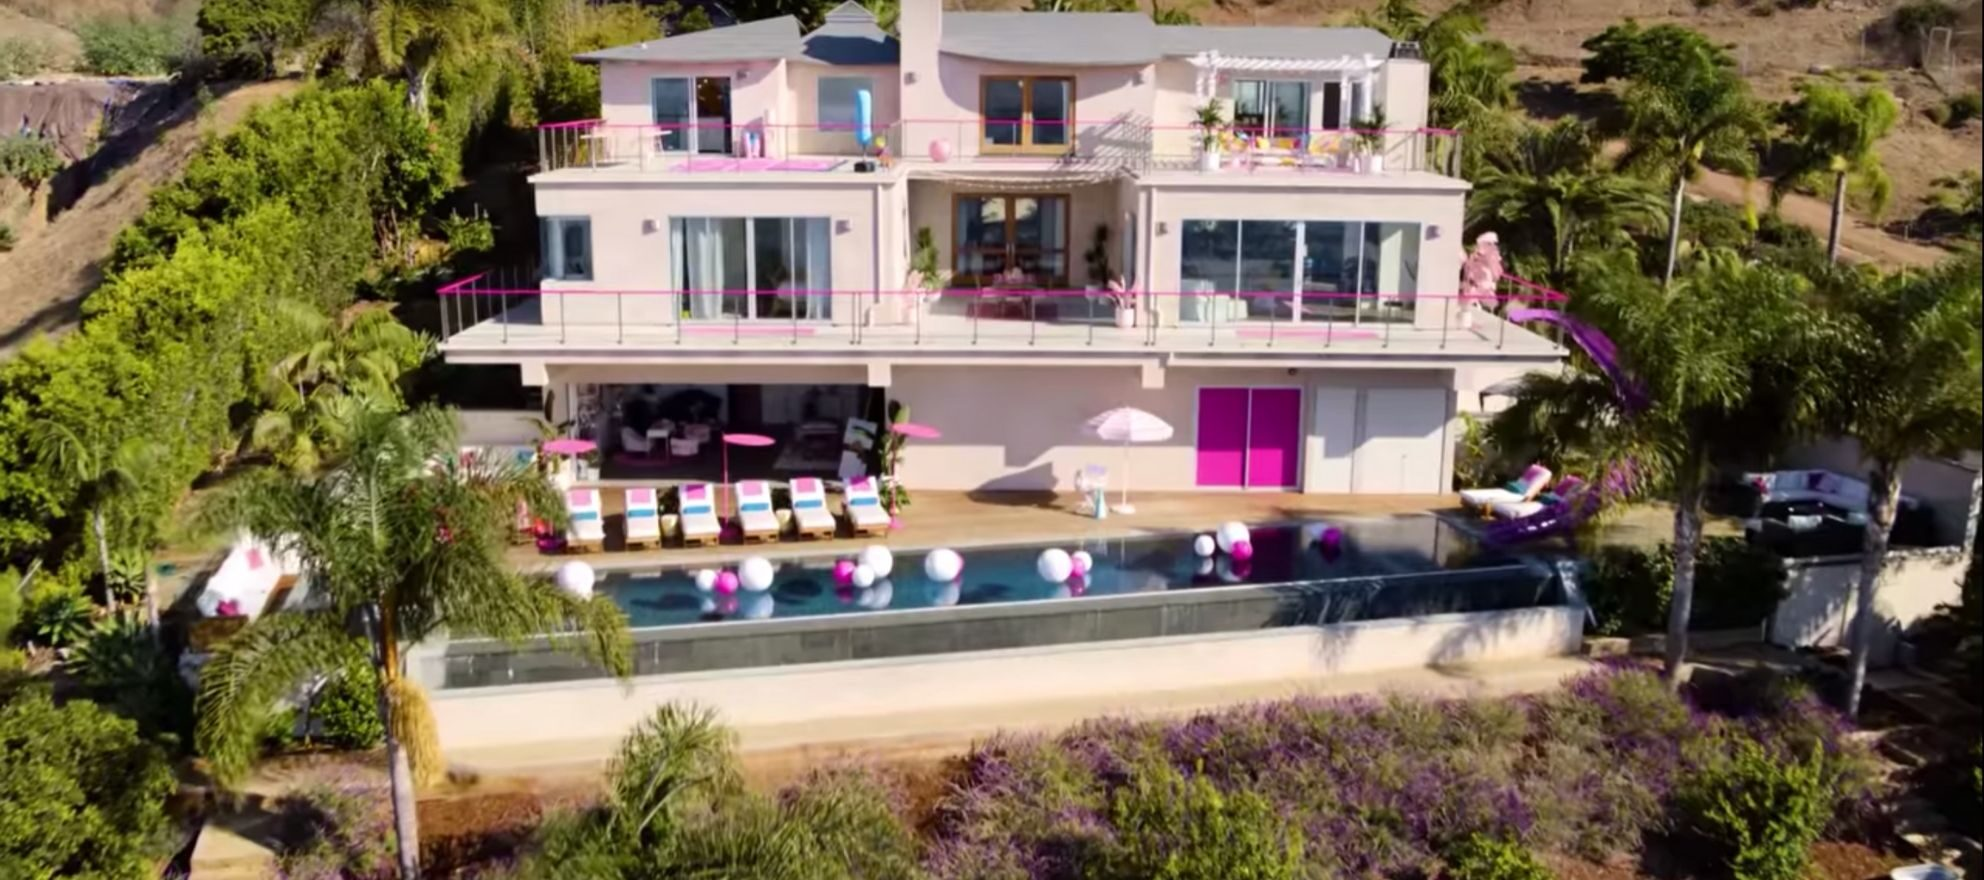 Barbie's Malibu Dreamhouse is now on Airbnb for $60 a night